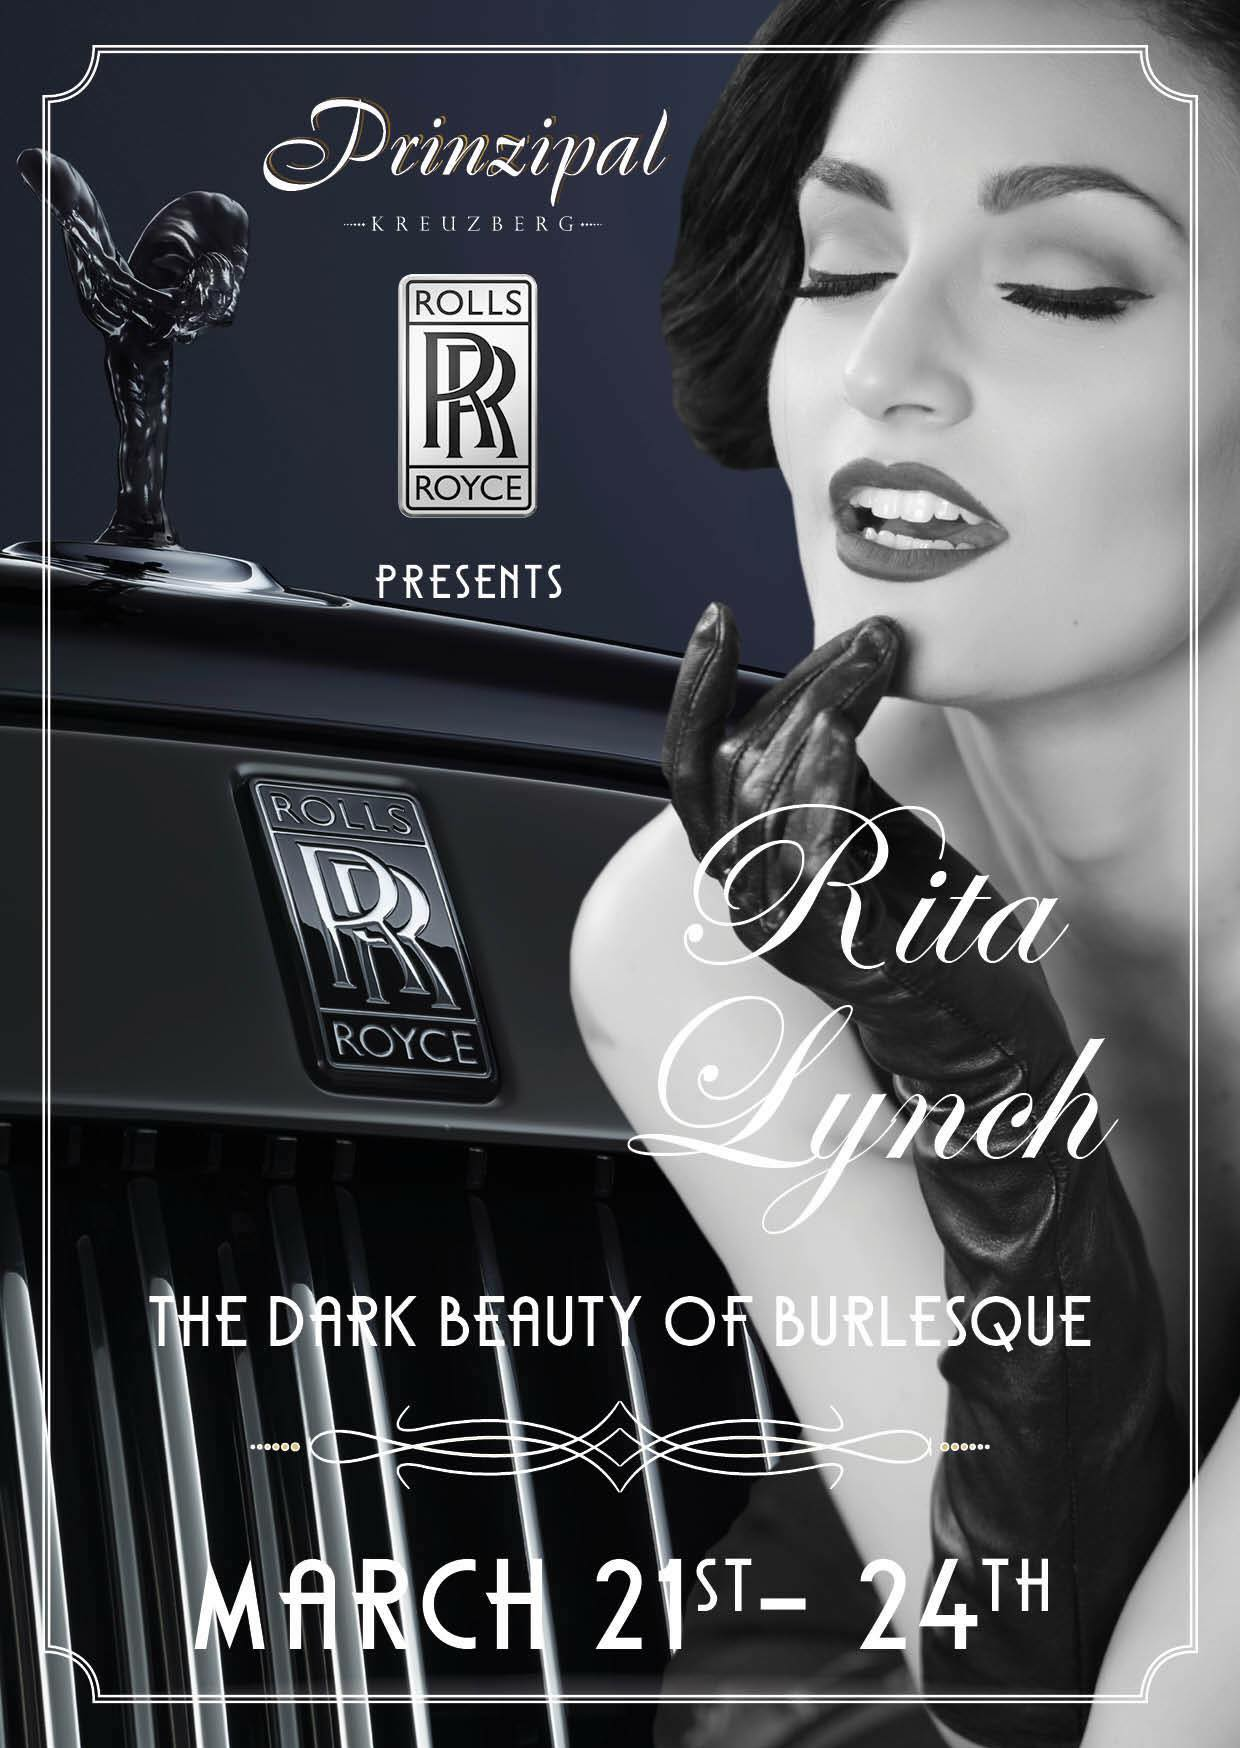 Rita Lynch - The Dark Beauty Of Burlesque